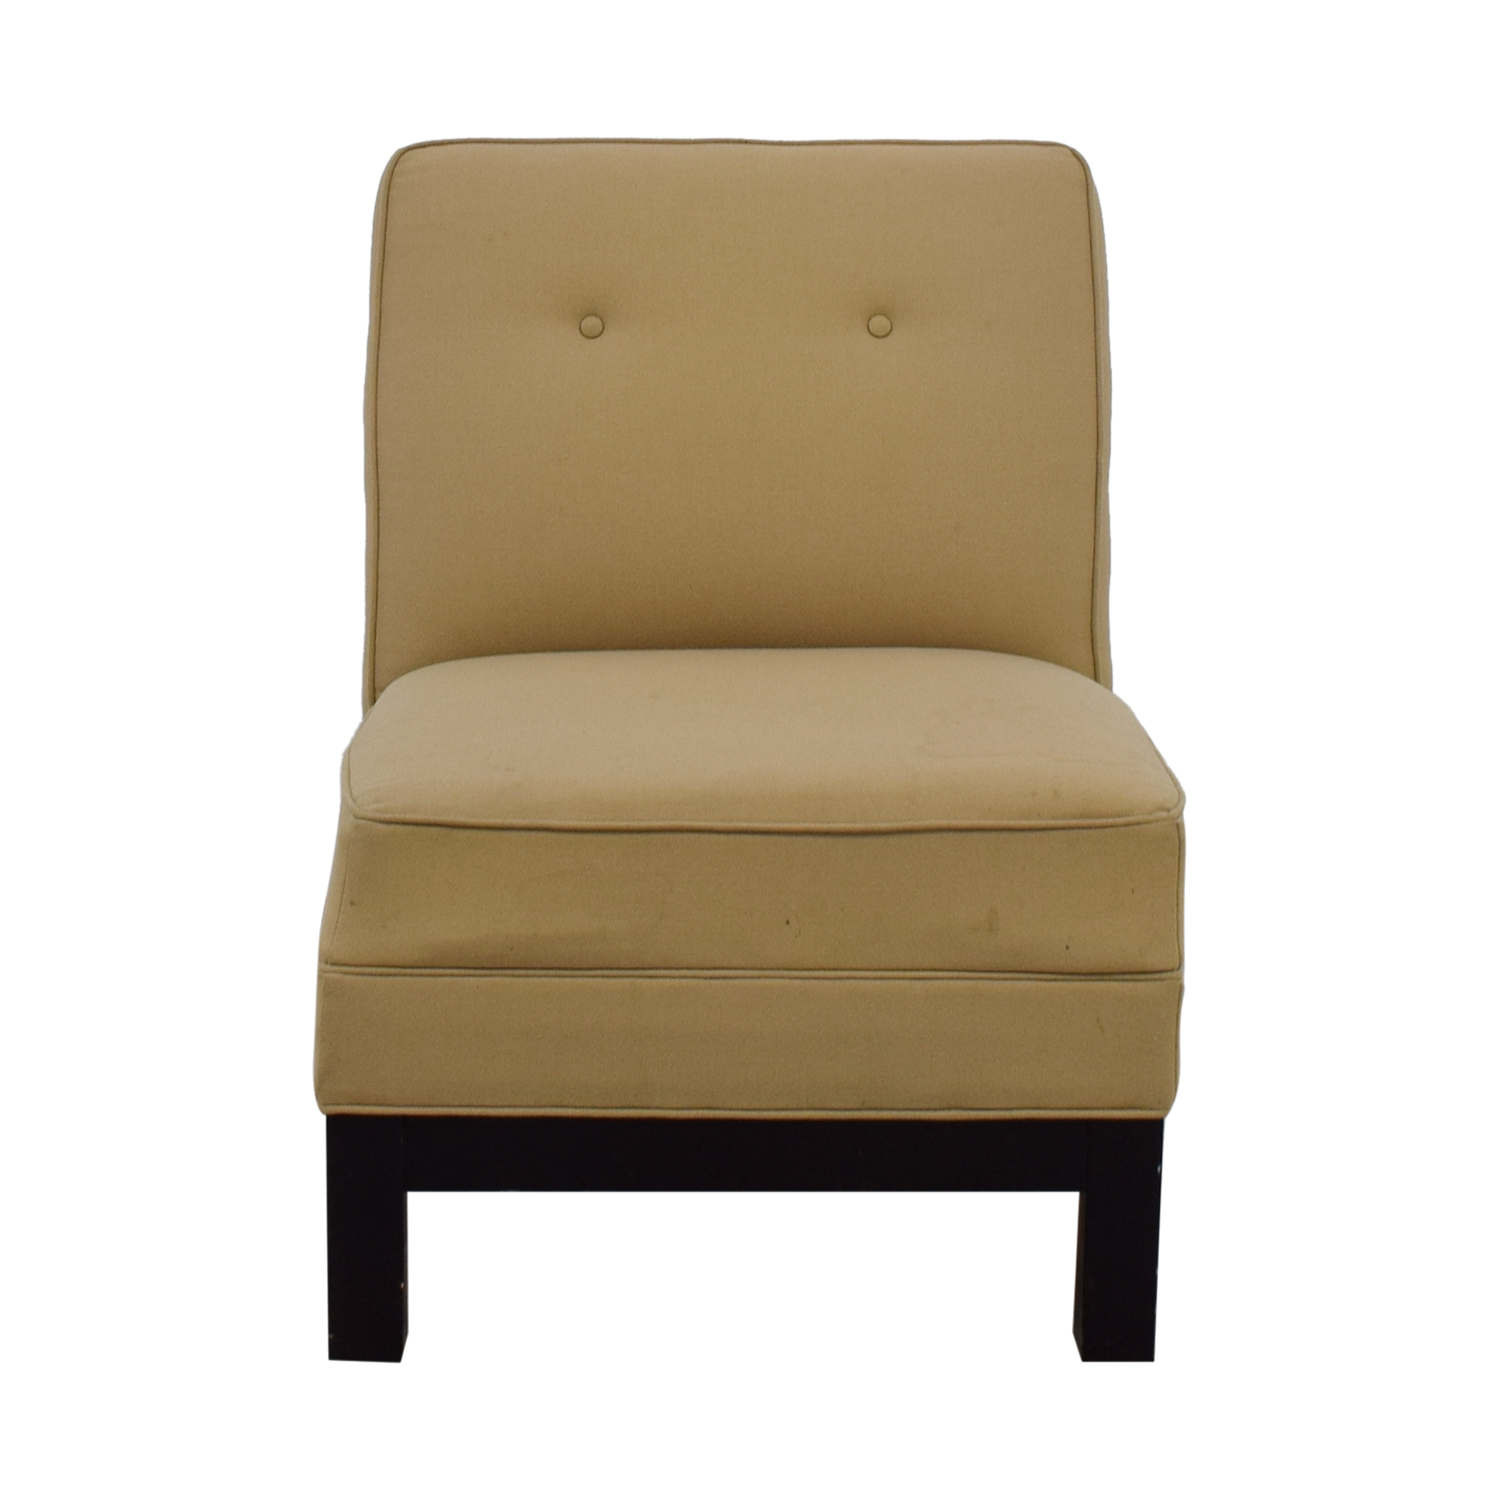 shop Restoration Hardware Beige Lounge Chair Restoration Hardware Chaises